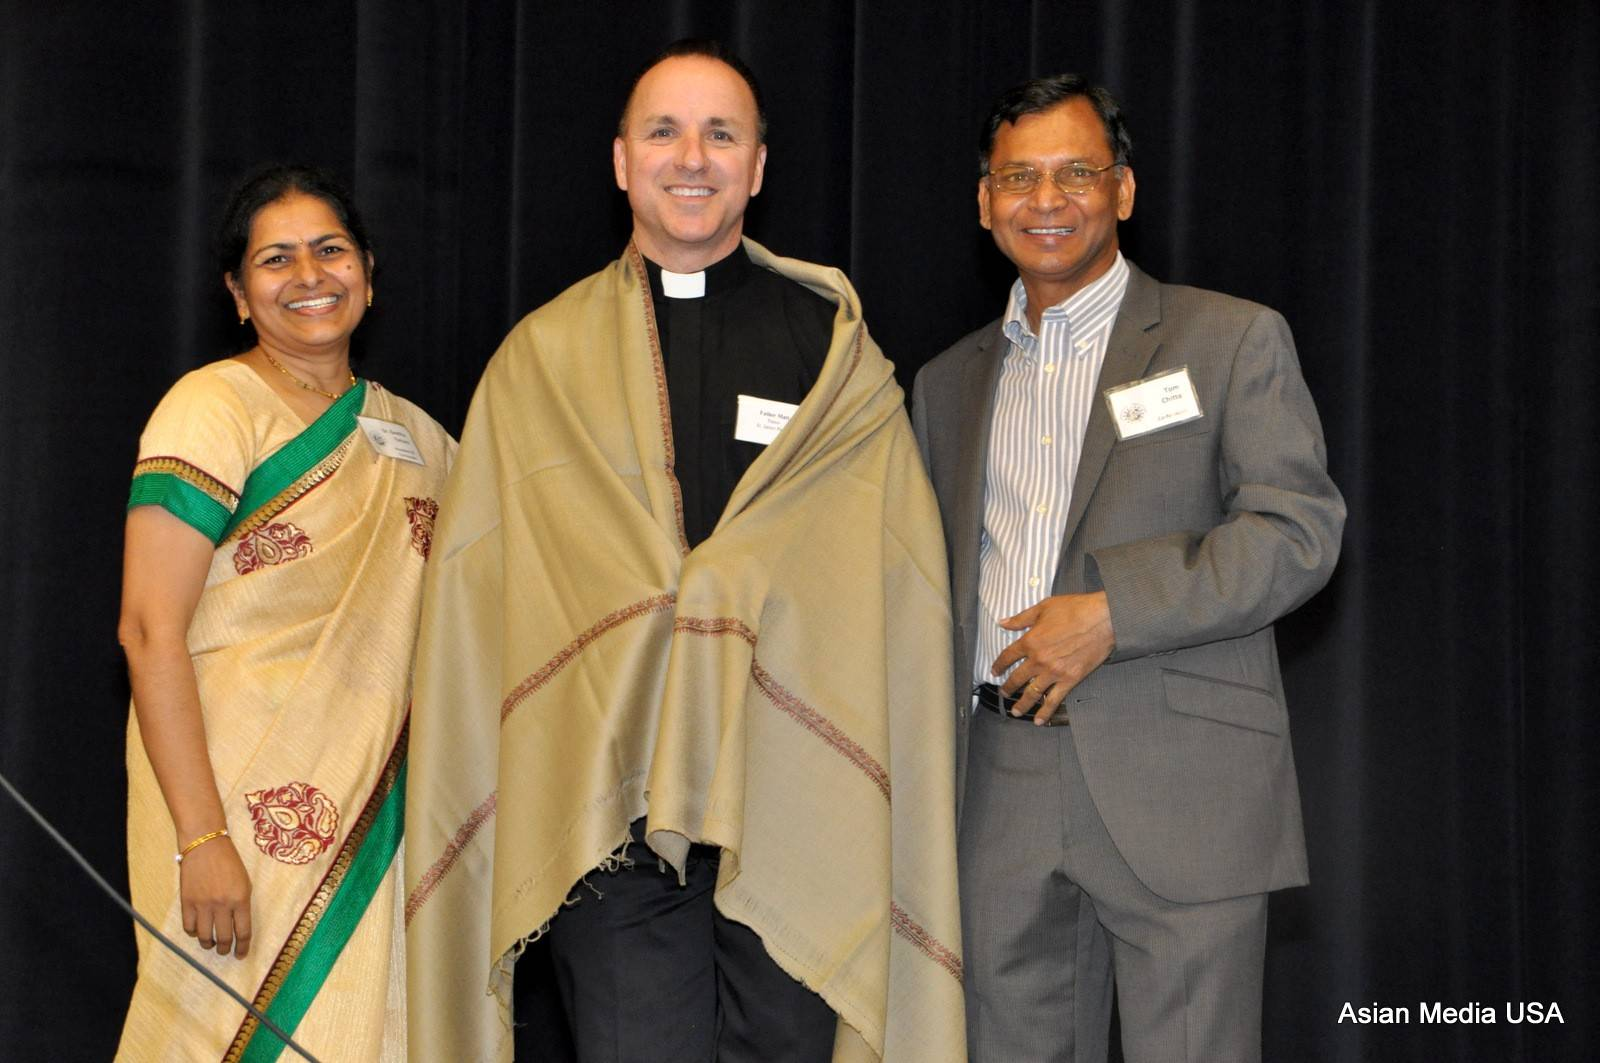 Dr. Geetha Yeruva, left, and Tom Chitta, right, founders of the Foundation for Children in Need with Father Matt Foley, pastor of St. James Parish in Arlington Heights at the foundation's 12th anniversary celebration.